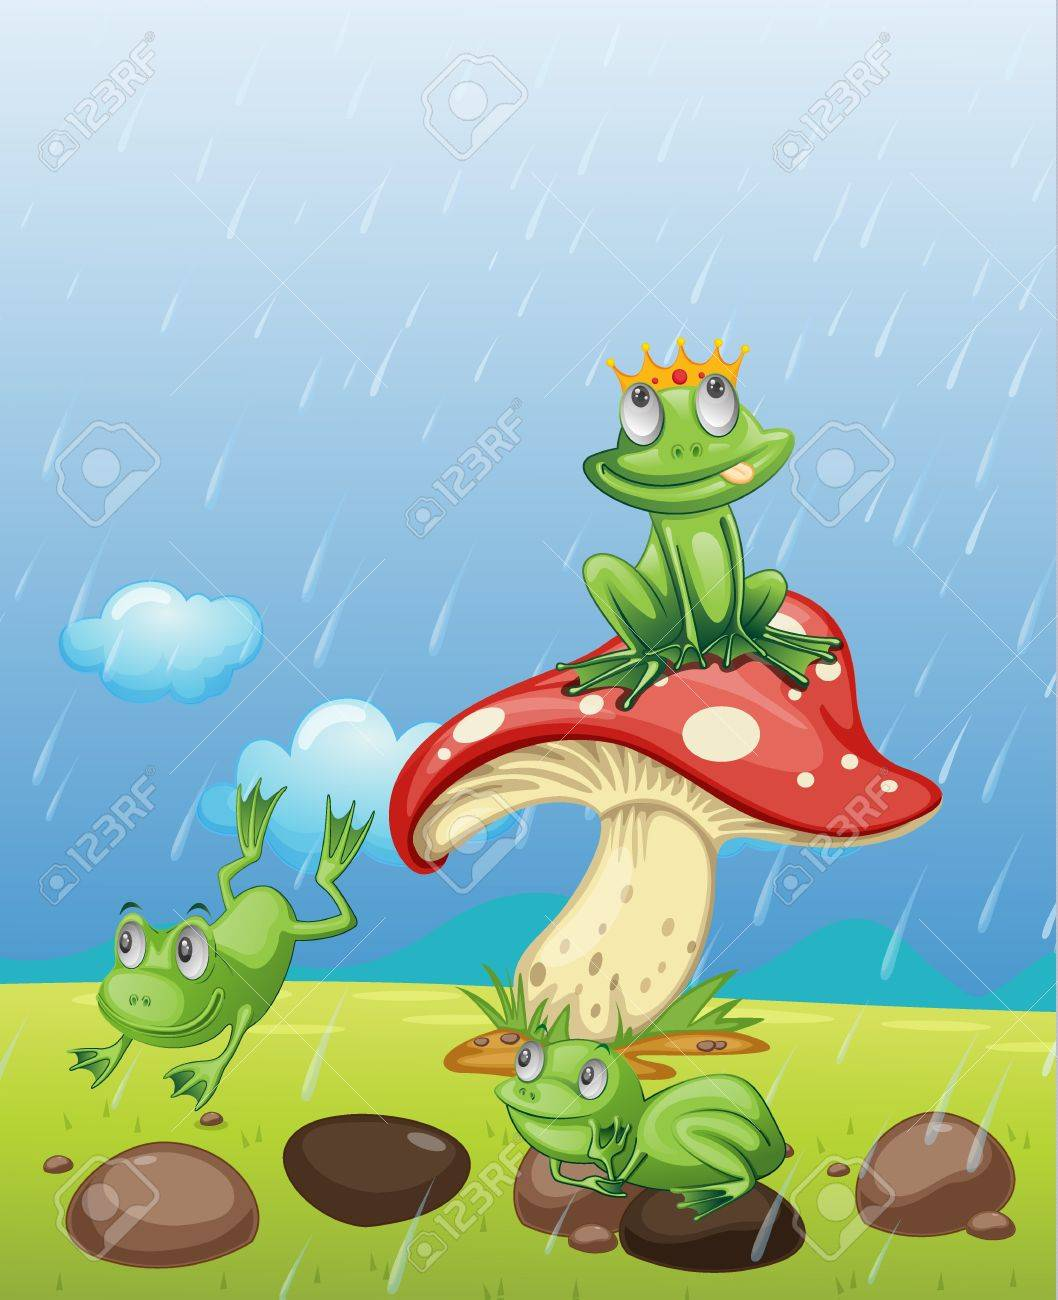 Illustration of frogs playing in the rain Stock Vector - 17339062